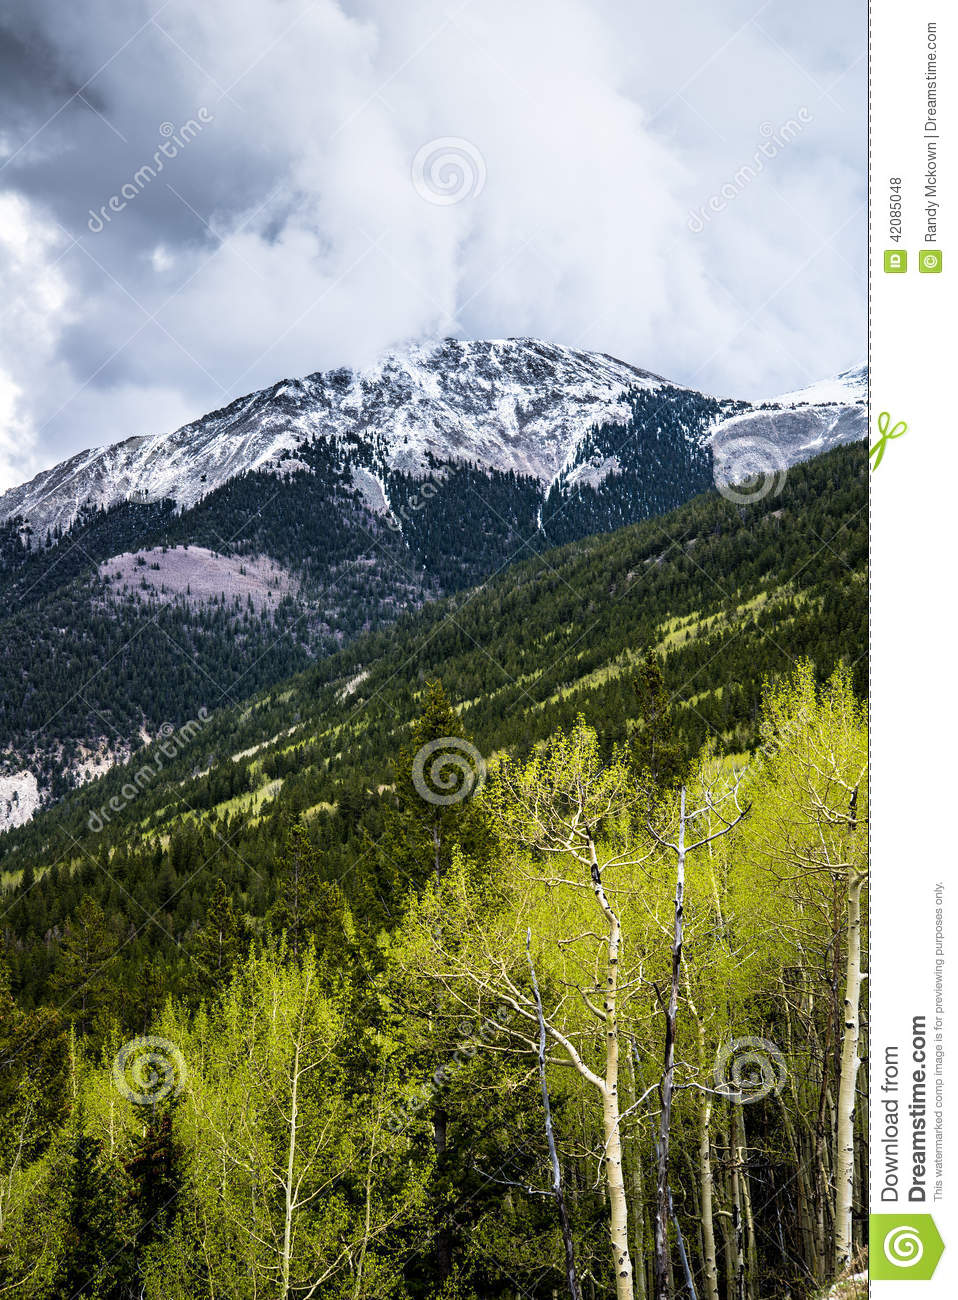 Black And Blue Floral Wallpaper Colorado Rocky Mountain Storm Stock Photo Image 42085048